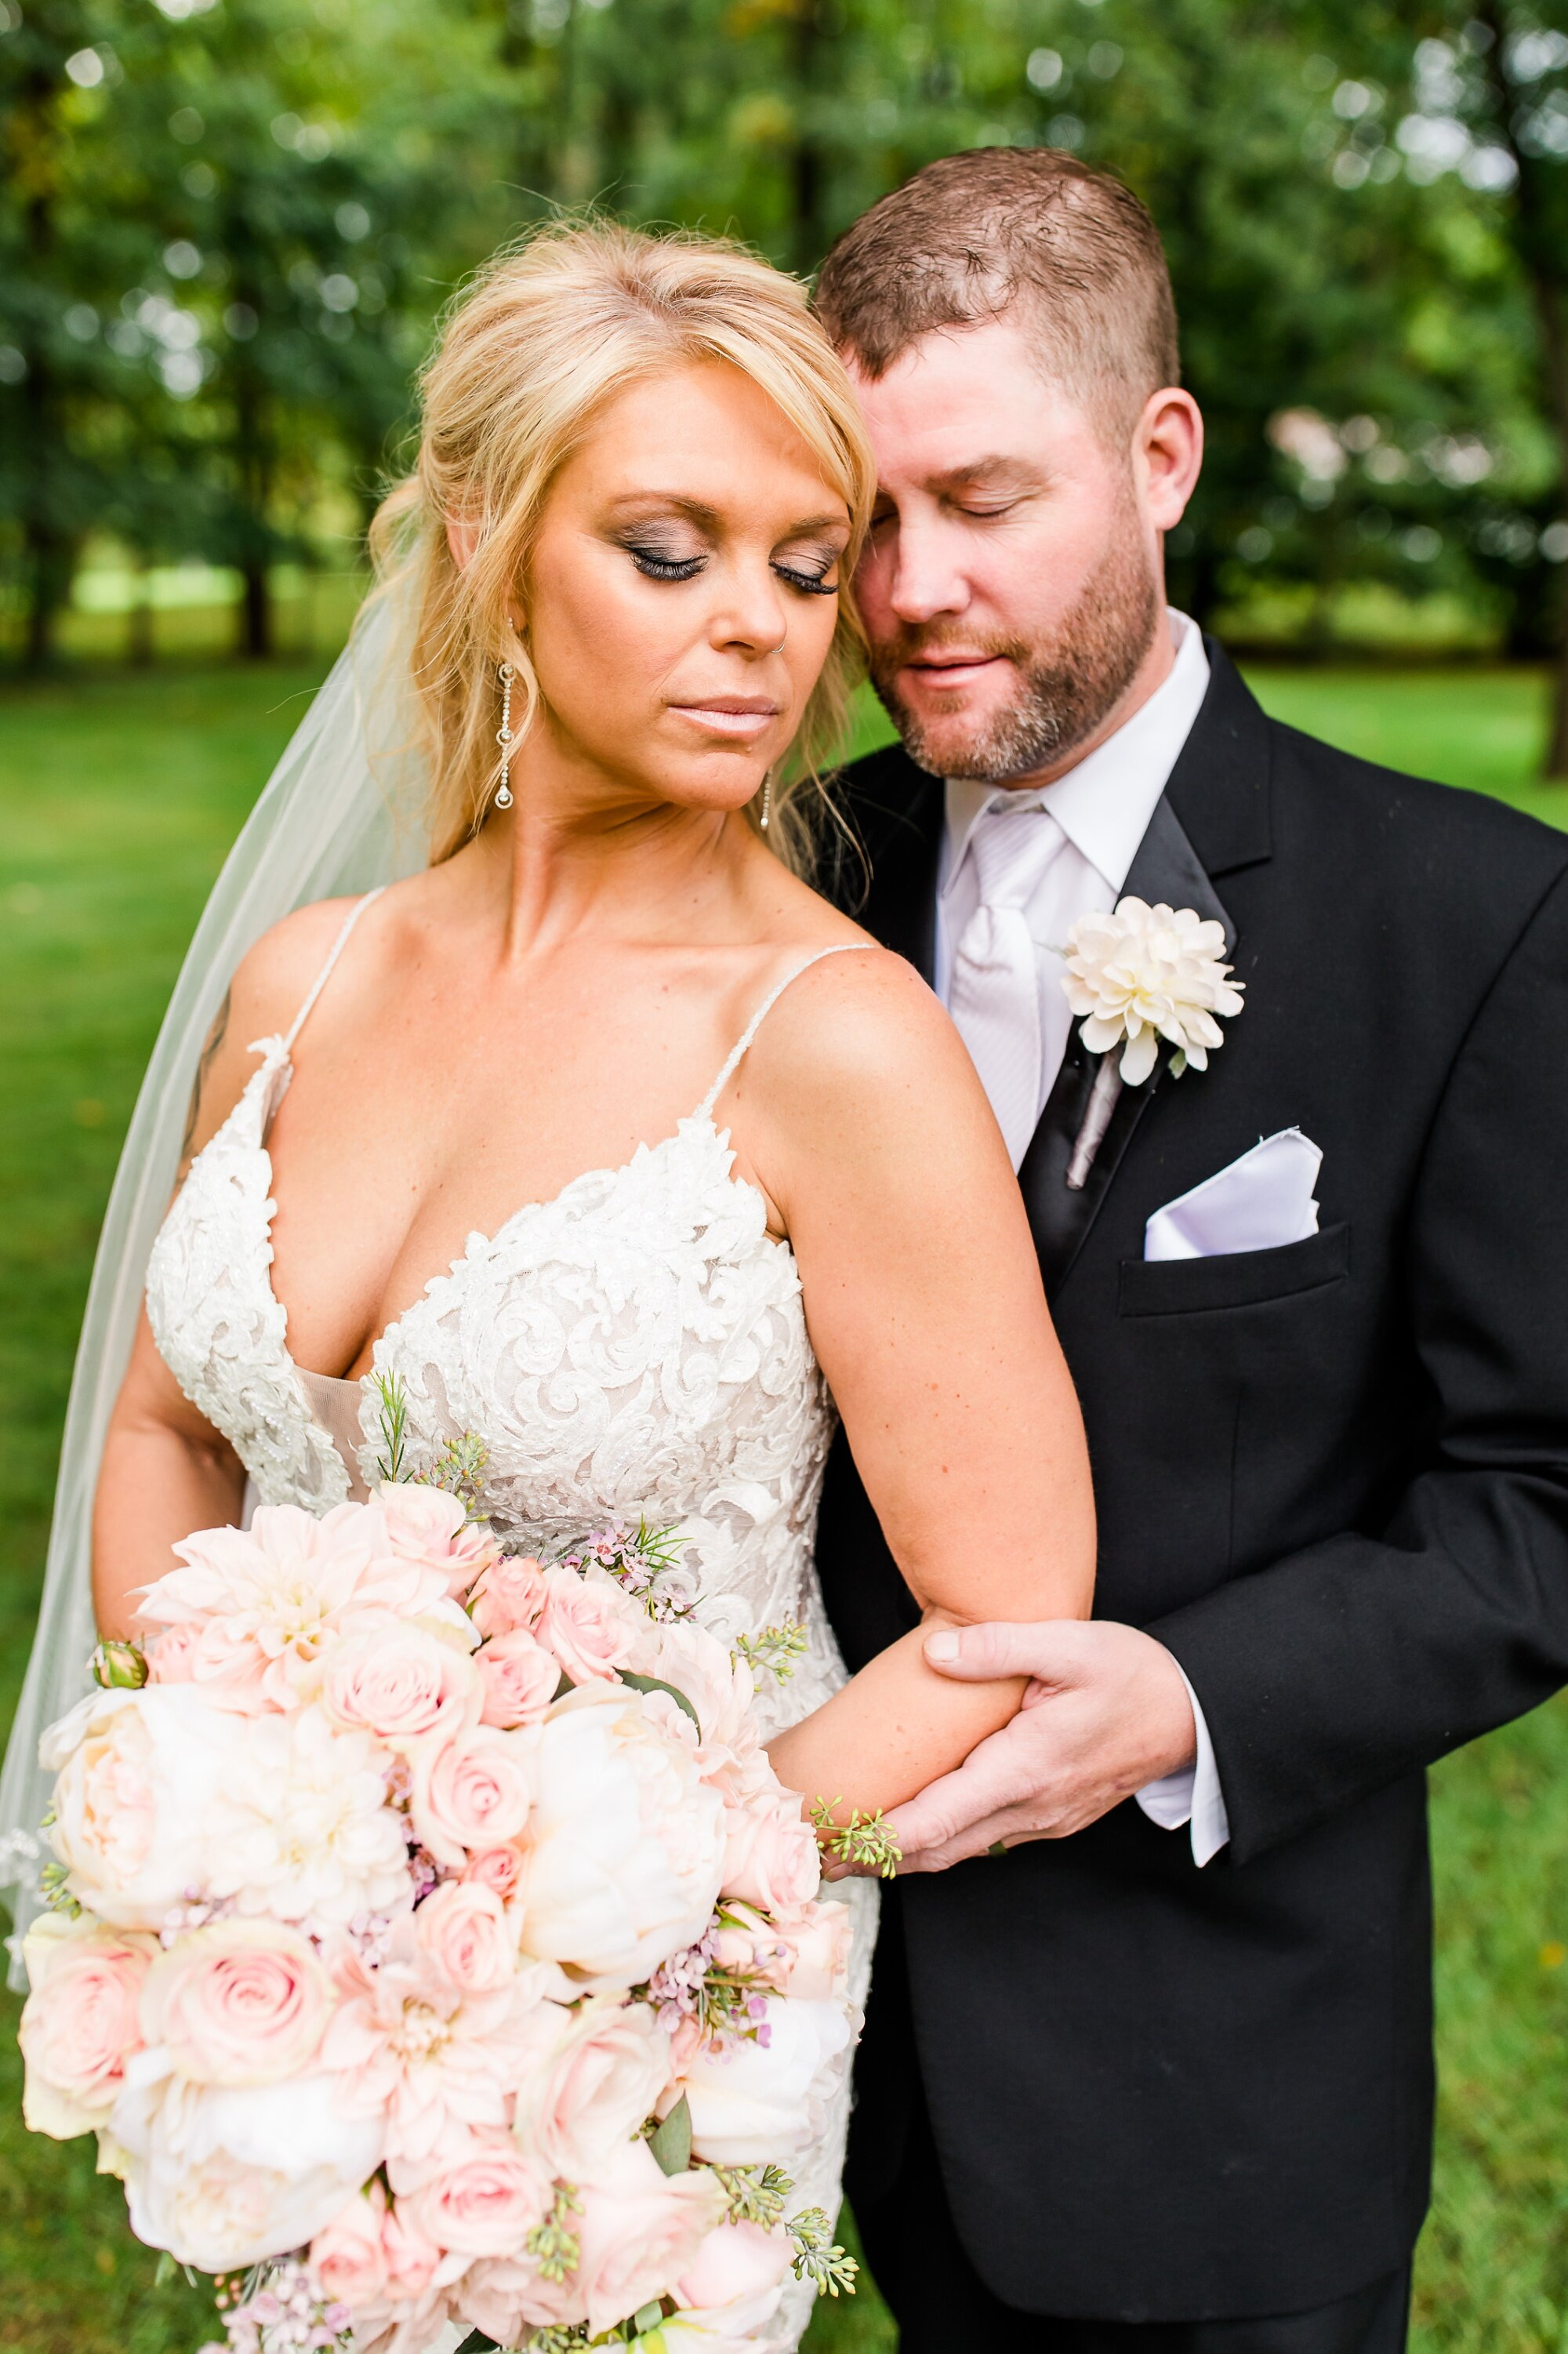 Amber Langerud Photography_Eagle Lake Rustic Styled Outdoor Wedding in Minnesota_6845.jpg